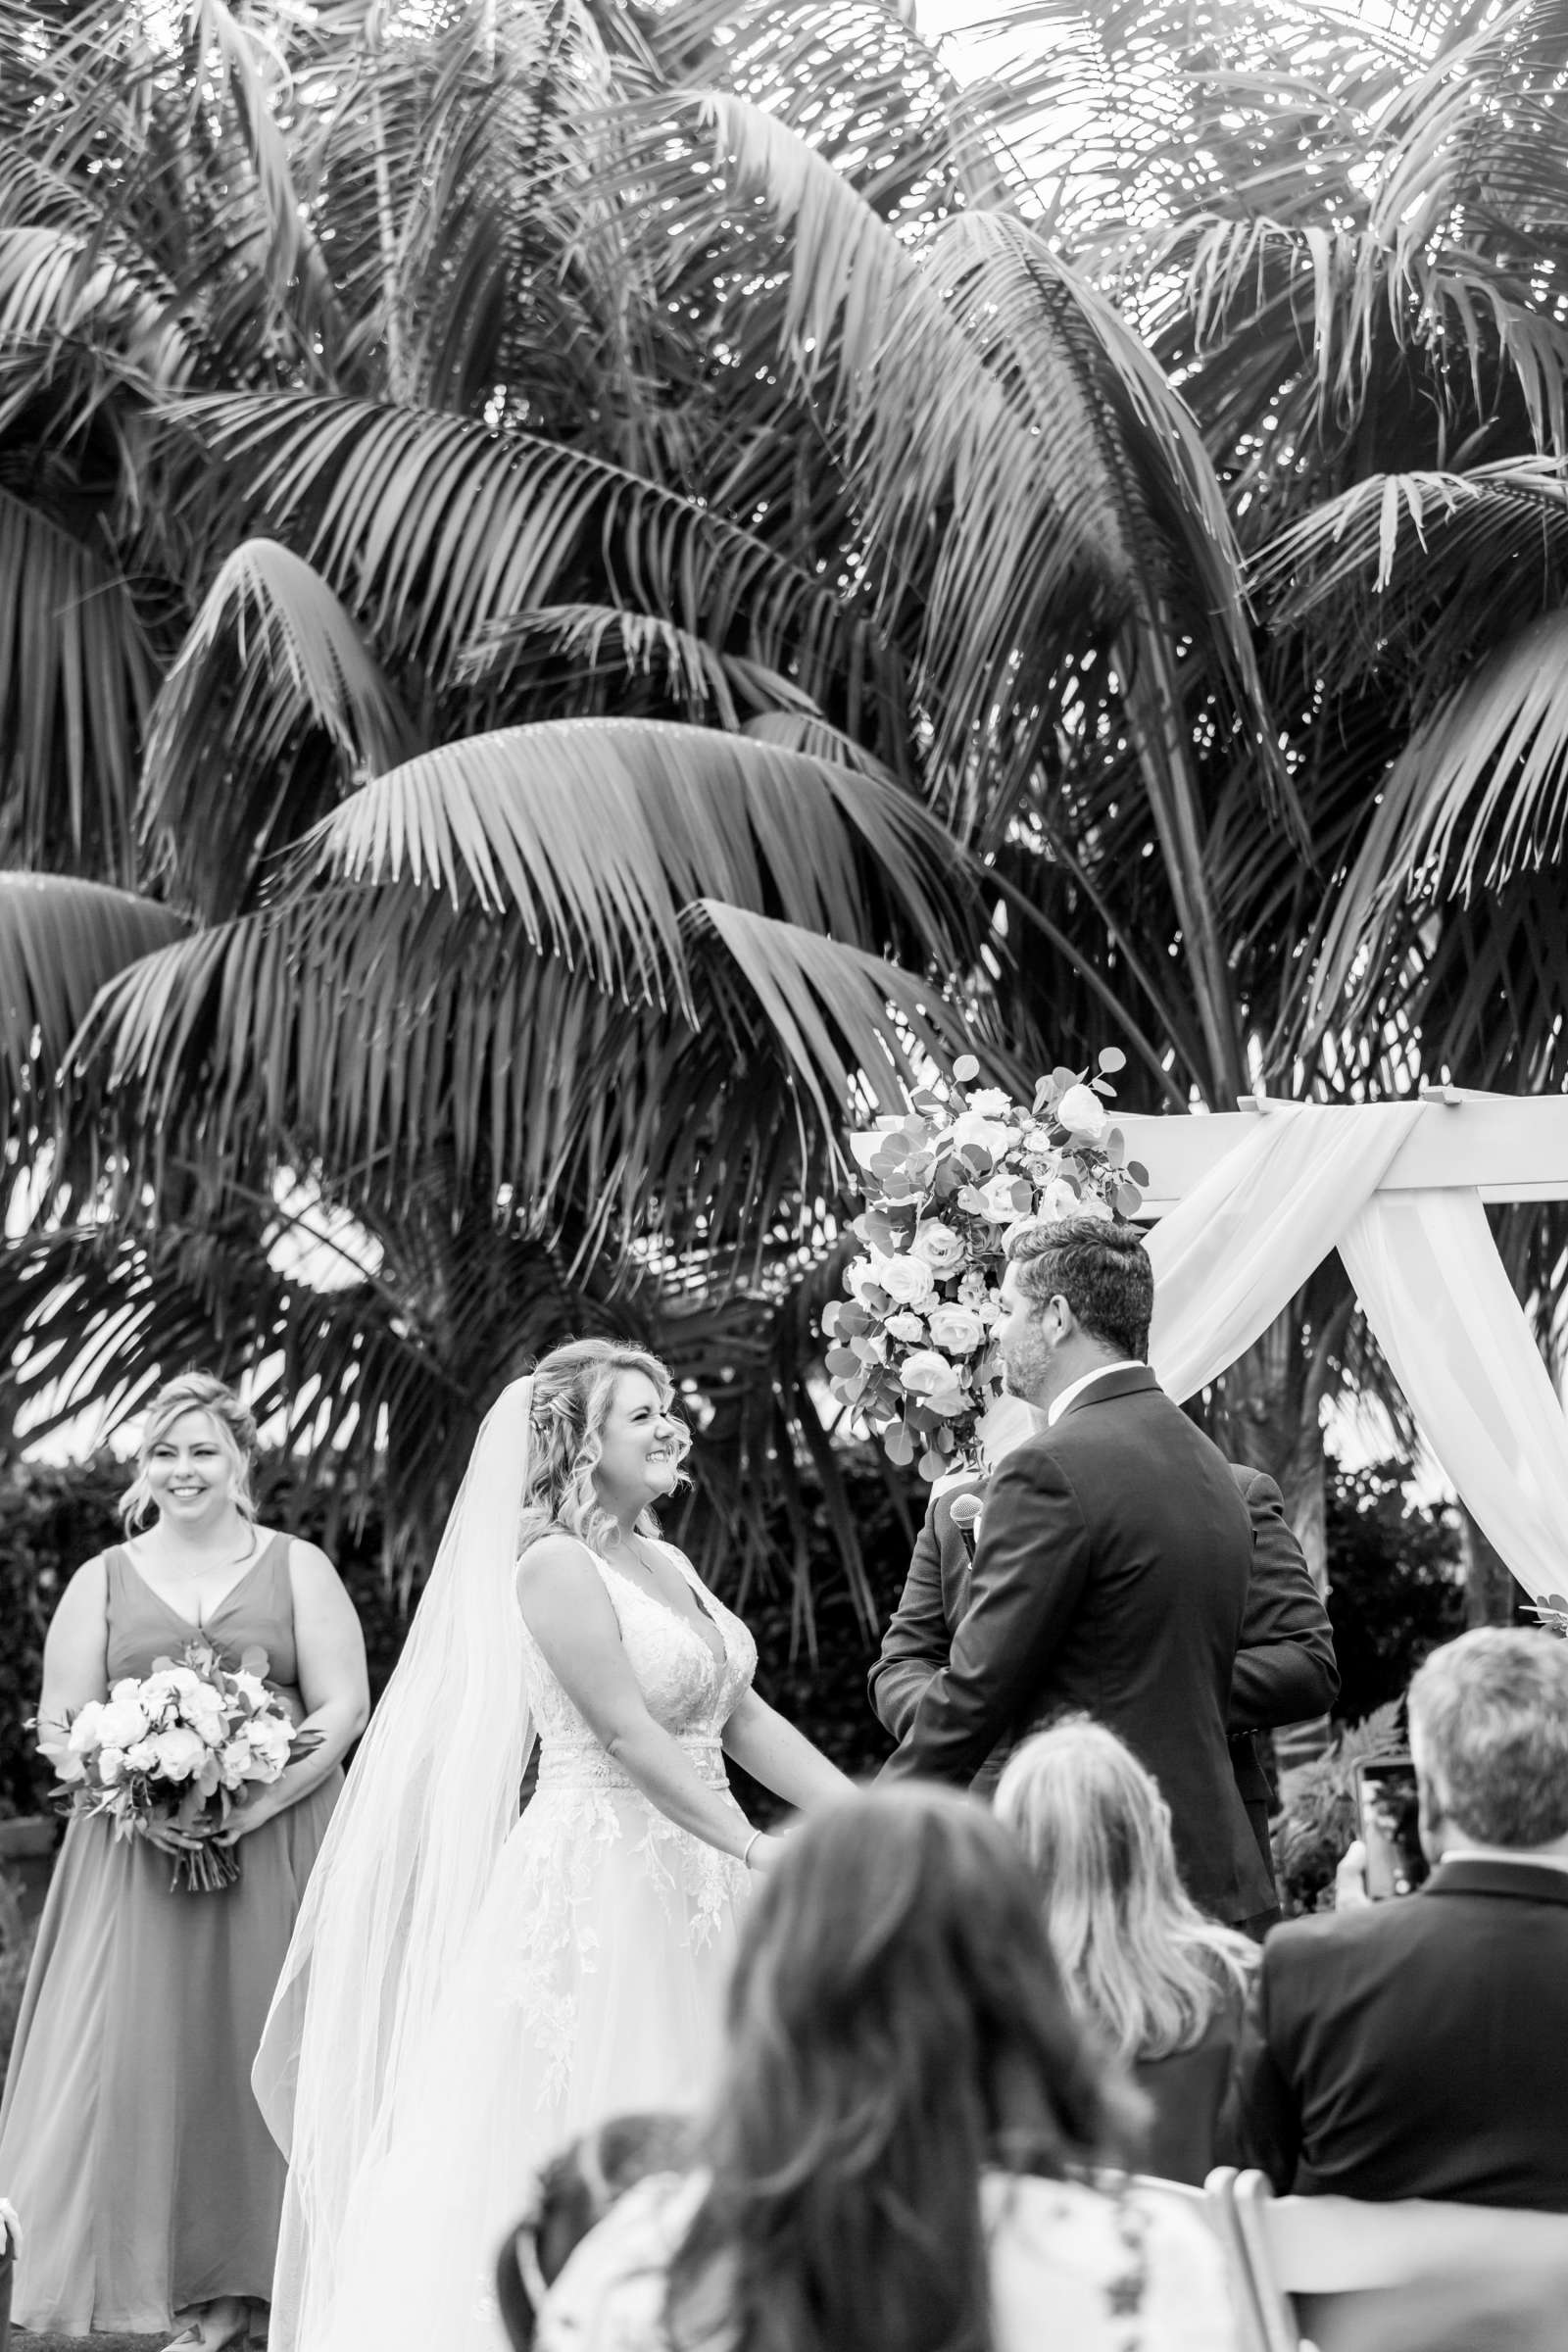 Cape Rey Carlsbad, A Hilton Resort Wedding, Michelle and Justin Wedding Photo #63 by True Photography